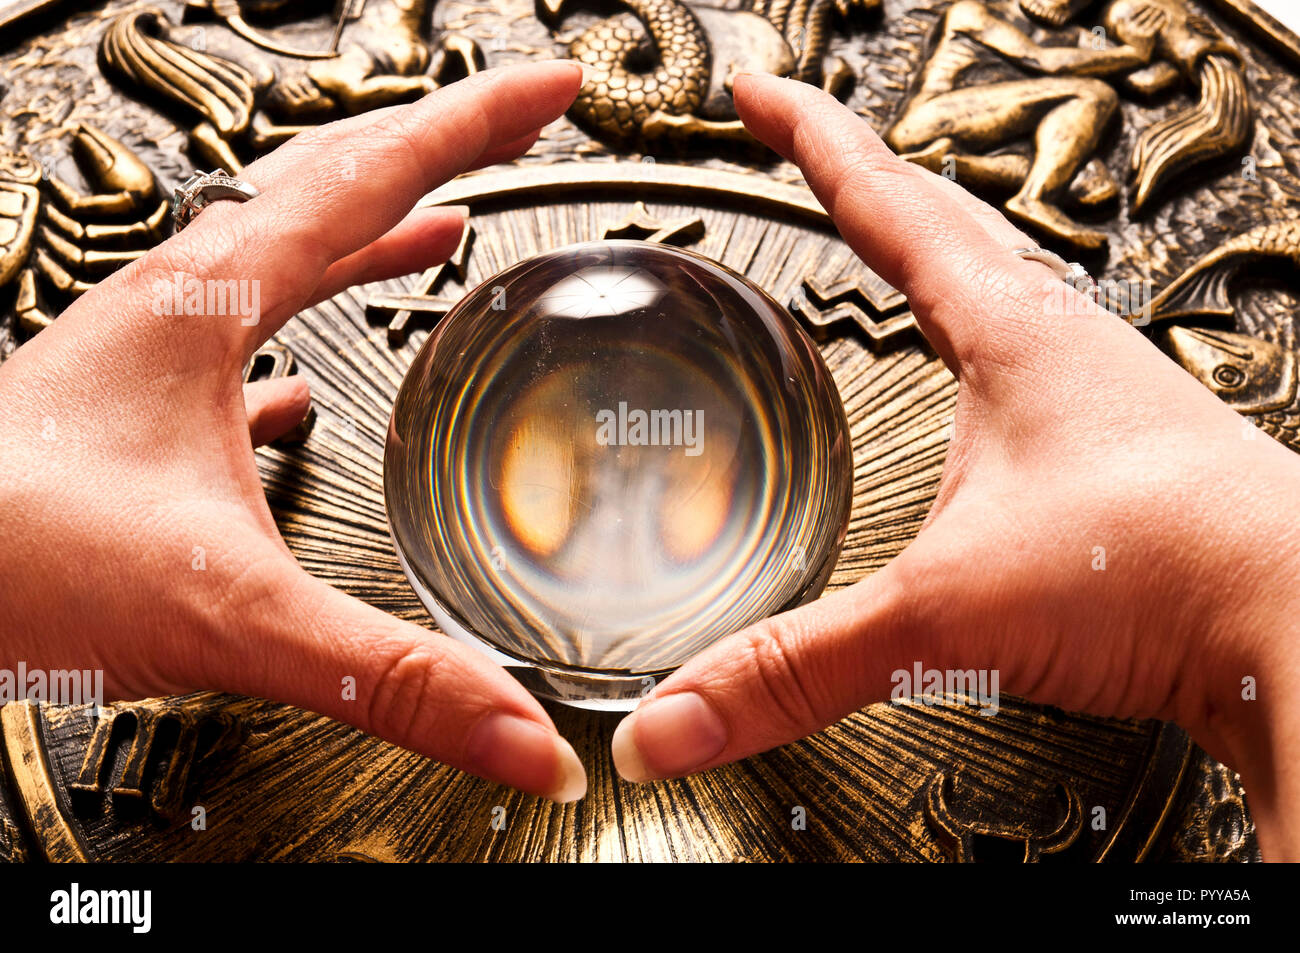 fortune teller hands and magic sphere for divination - Stock Image